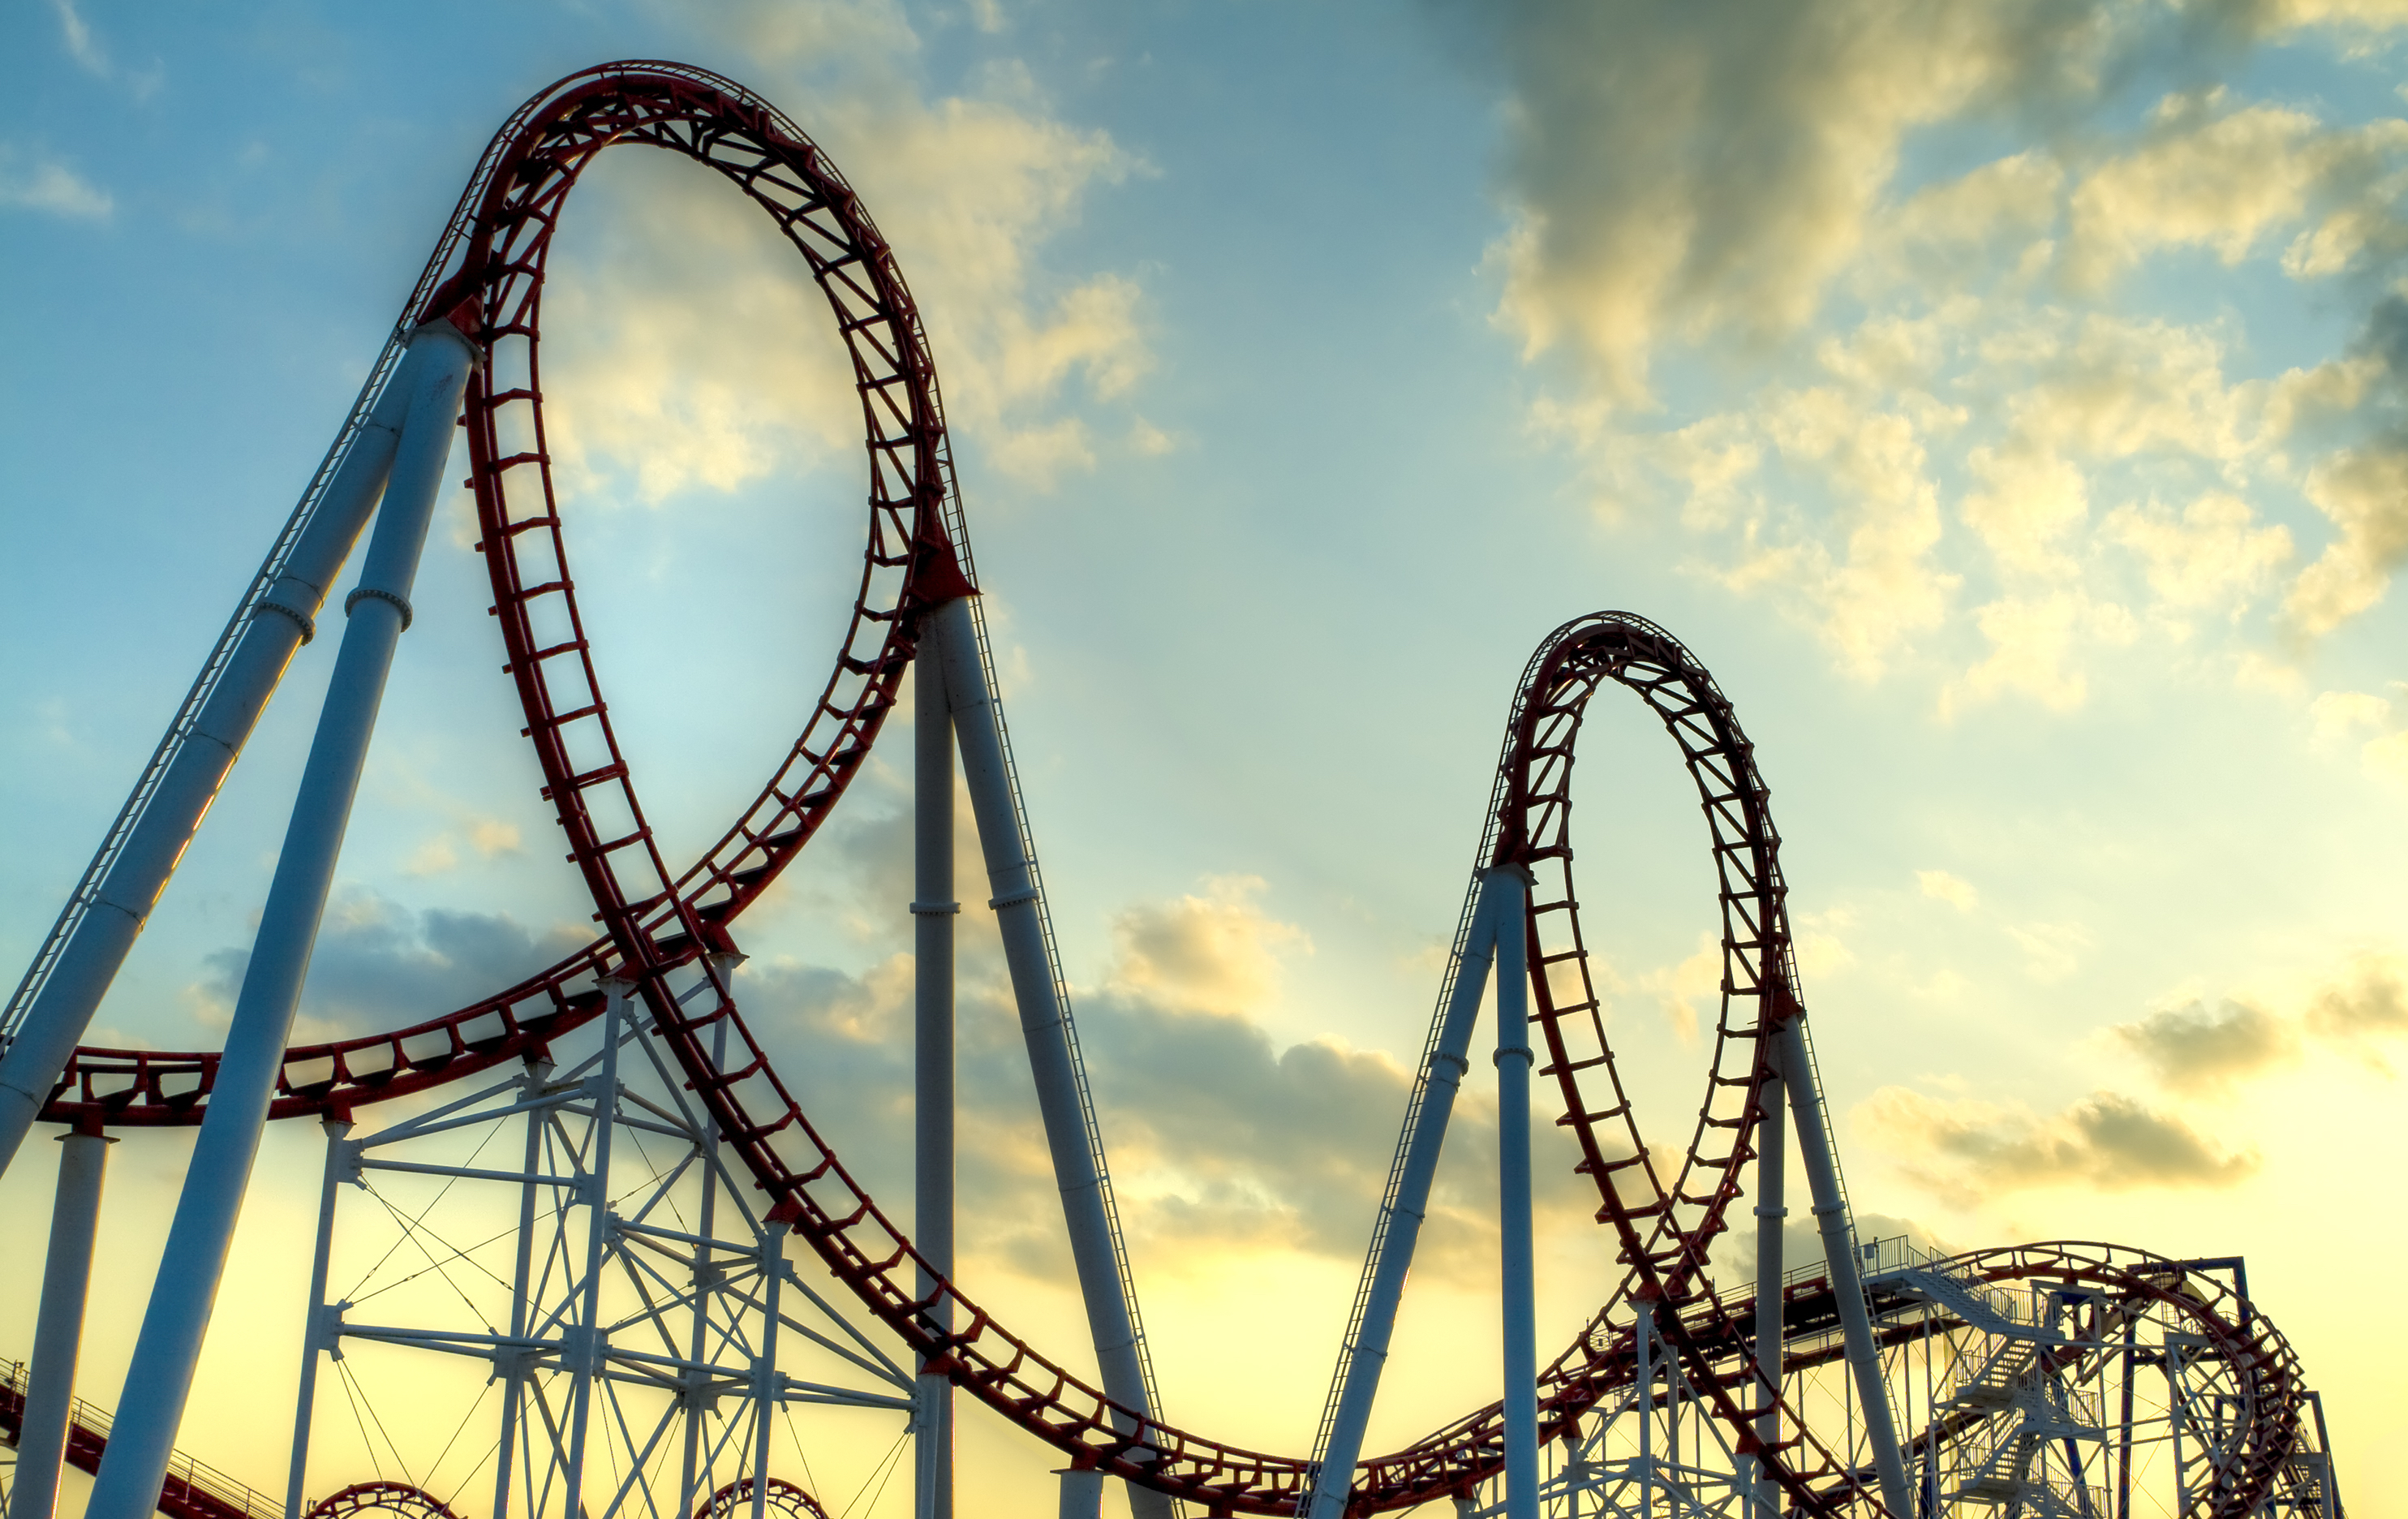 how do roller coasters relate to physics